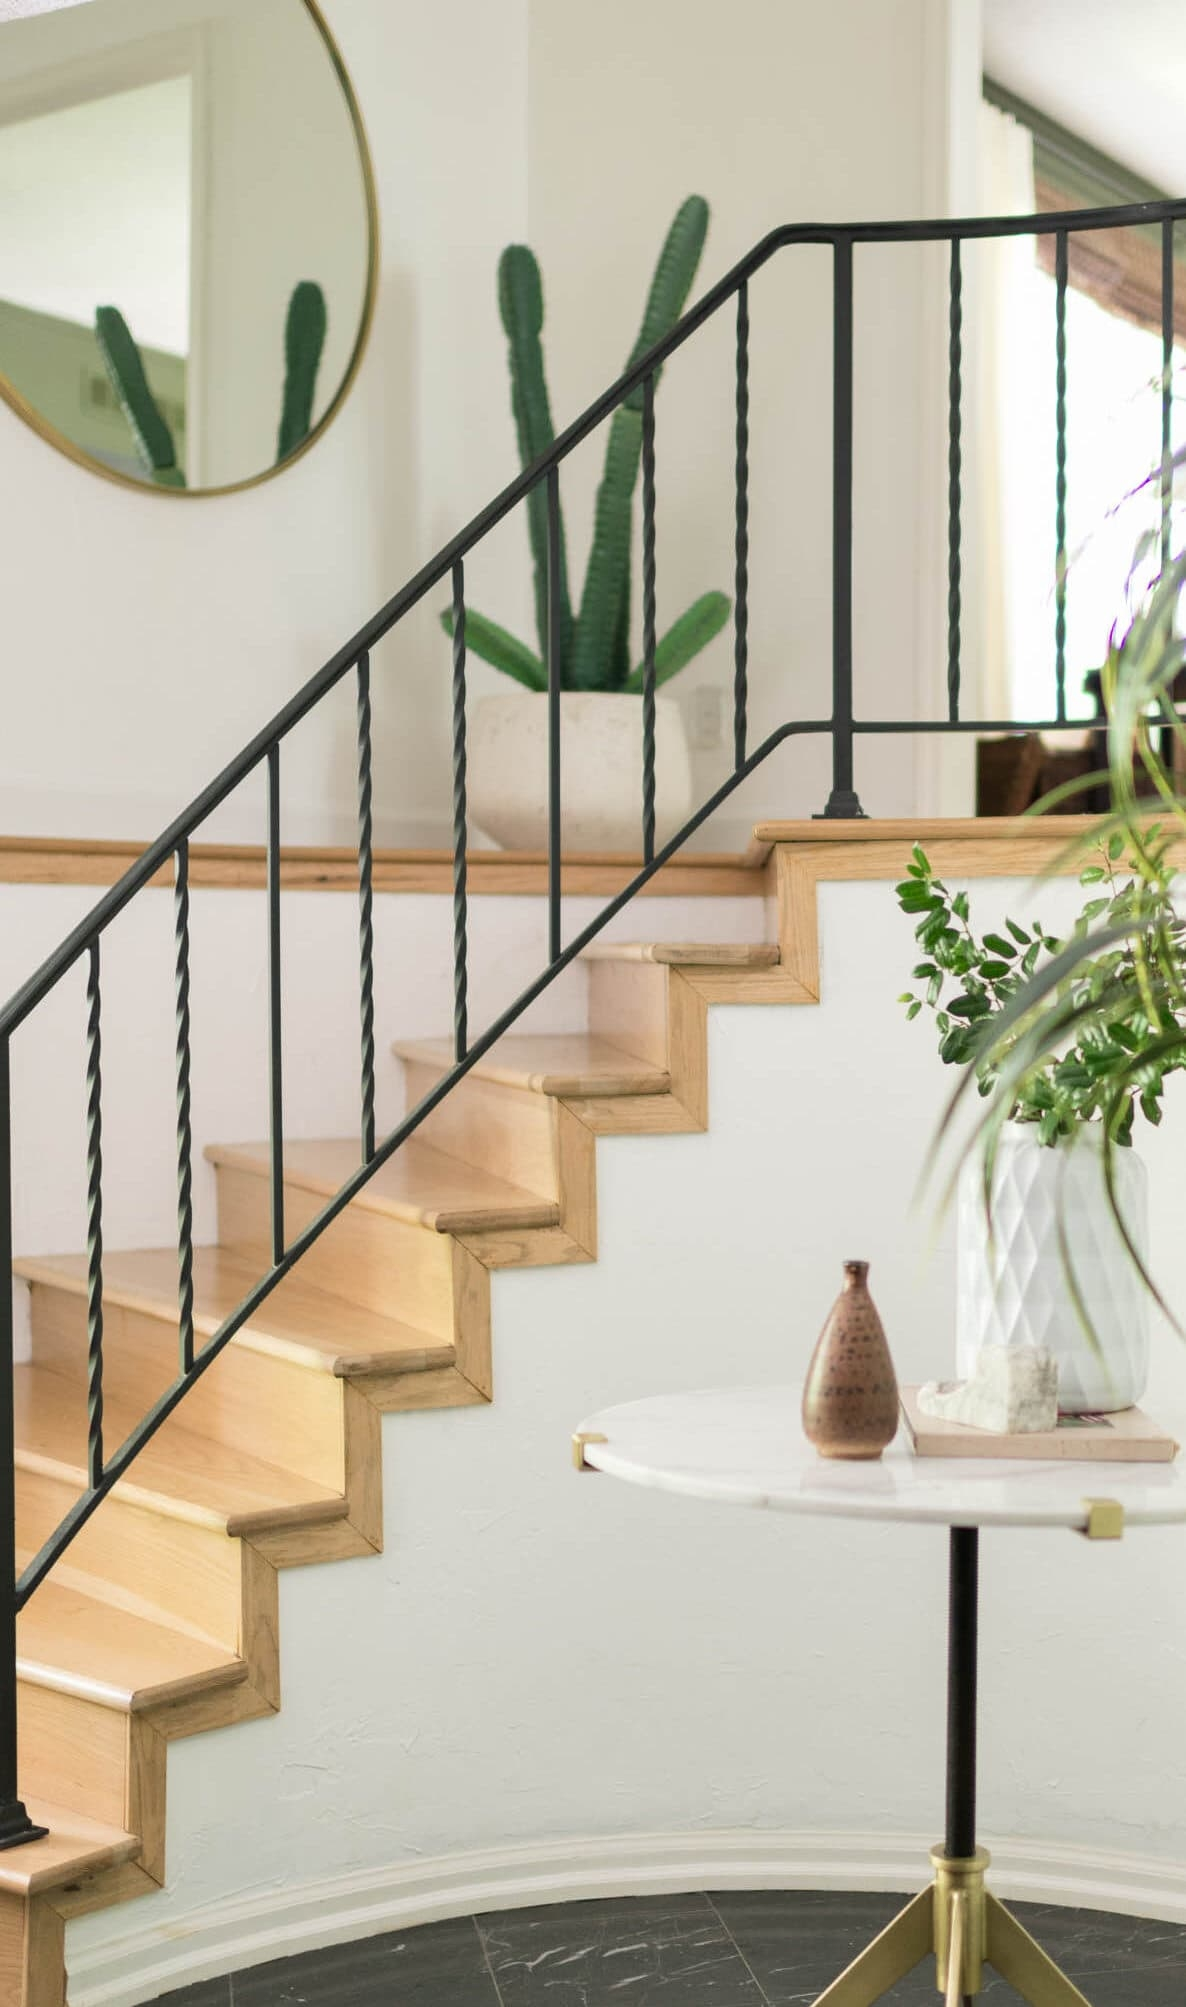 Stair Railing Idea Update Wrought Iron Handrails Bigger Than   Wrought Iron Stair Railings Interior Cost   Stair Parts   Iron Staircase Railings   Rod Iron Balusters   Wood   Stair Spindles